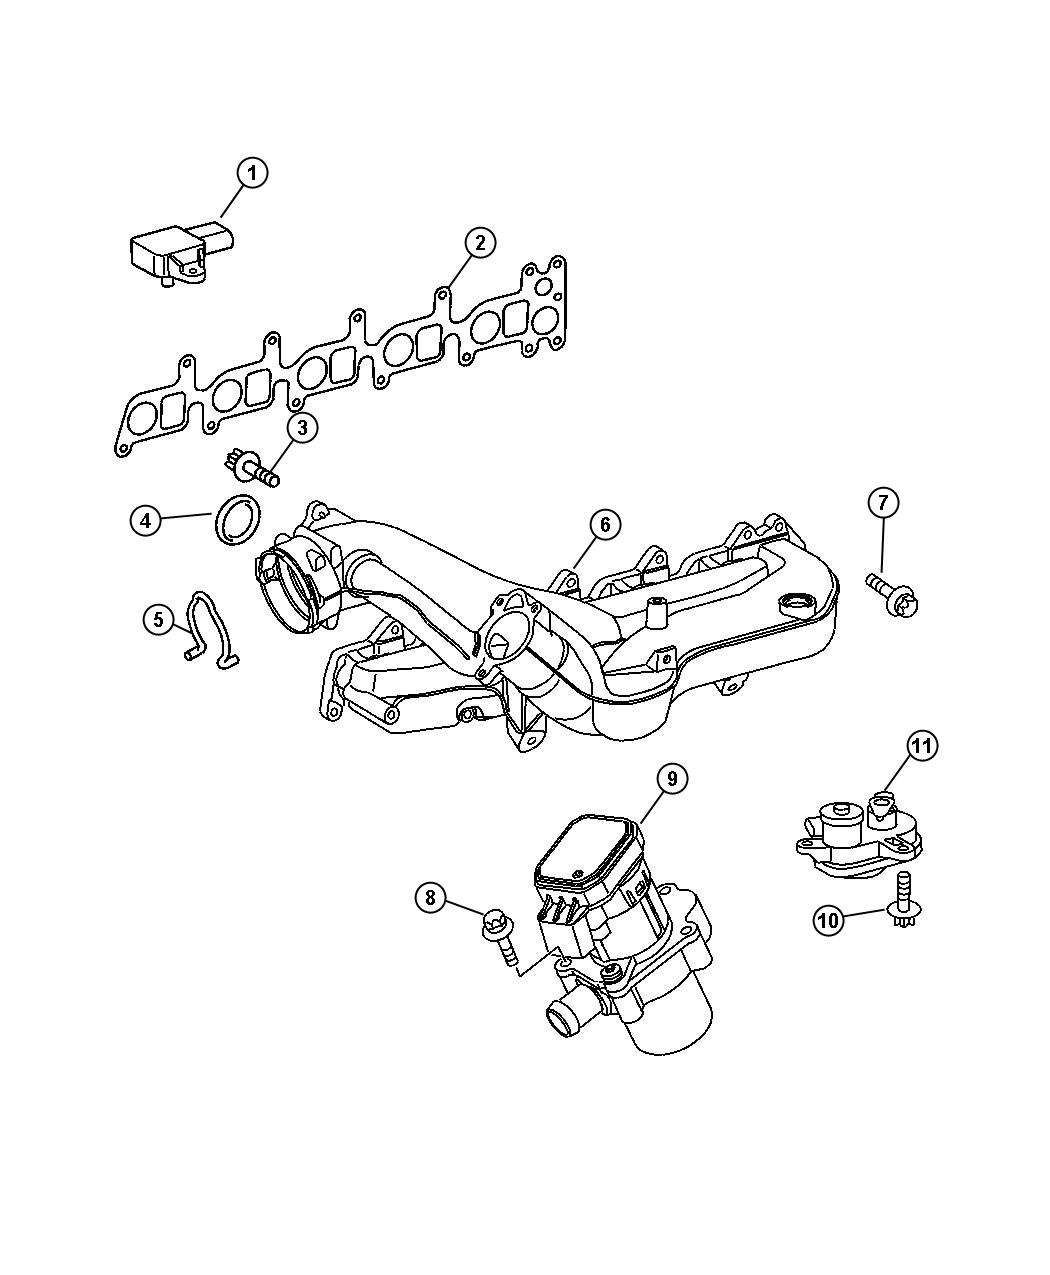 Dodge Fuel Separator Location also F150svtraptordeaverrearsprings additionally Front Suspension Parts Diagram additionally 9802 Dodge Ram 25003500 Dual Steering Stabilizer Kit EBay furthermore 1041522 78 4x4 Front Axle Schematic. on dodge 3500 ball joint replacement